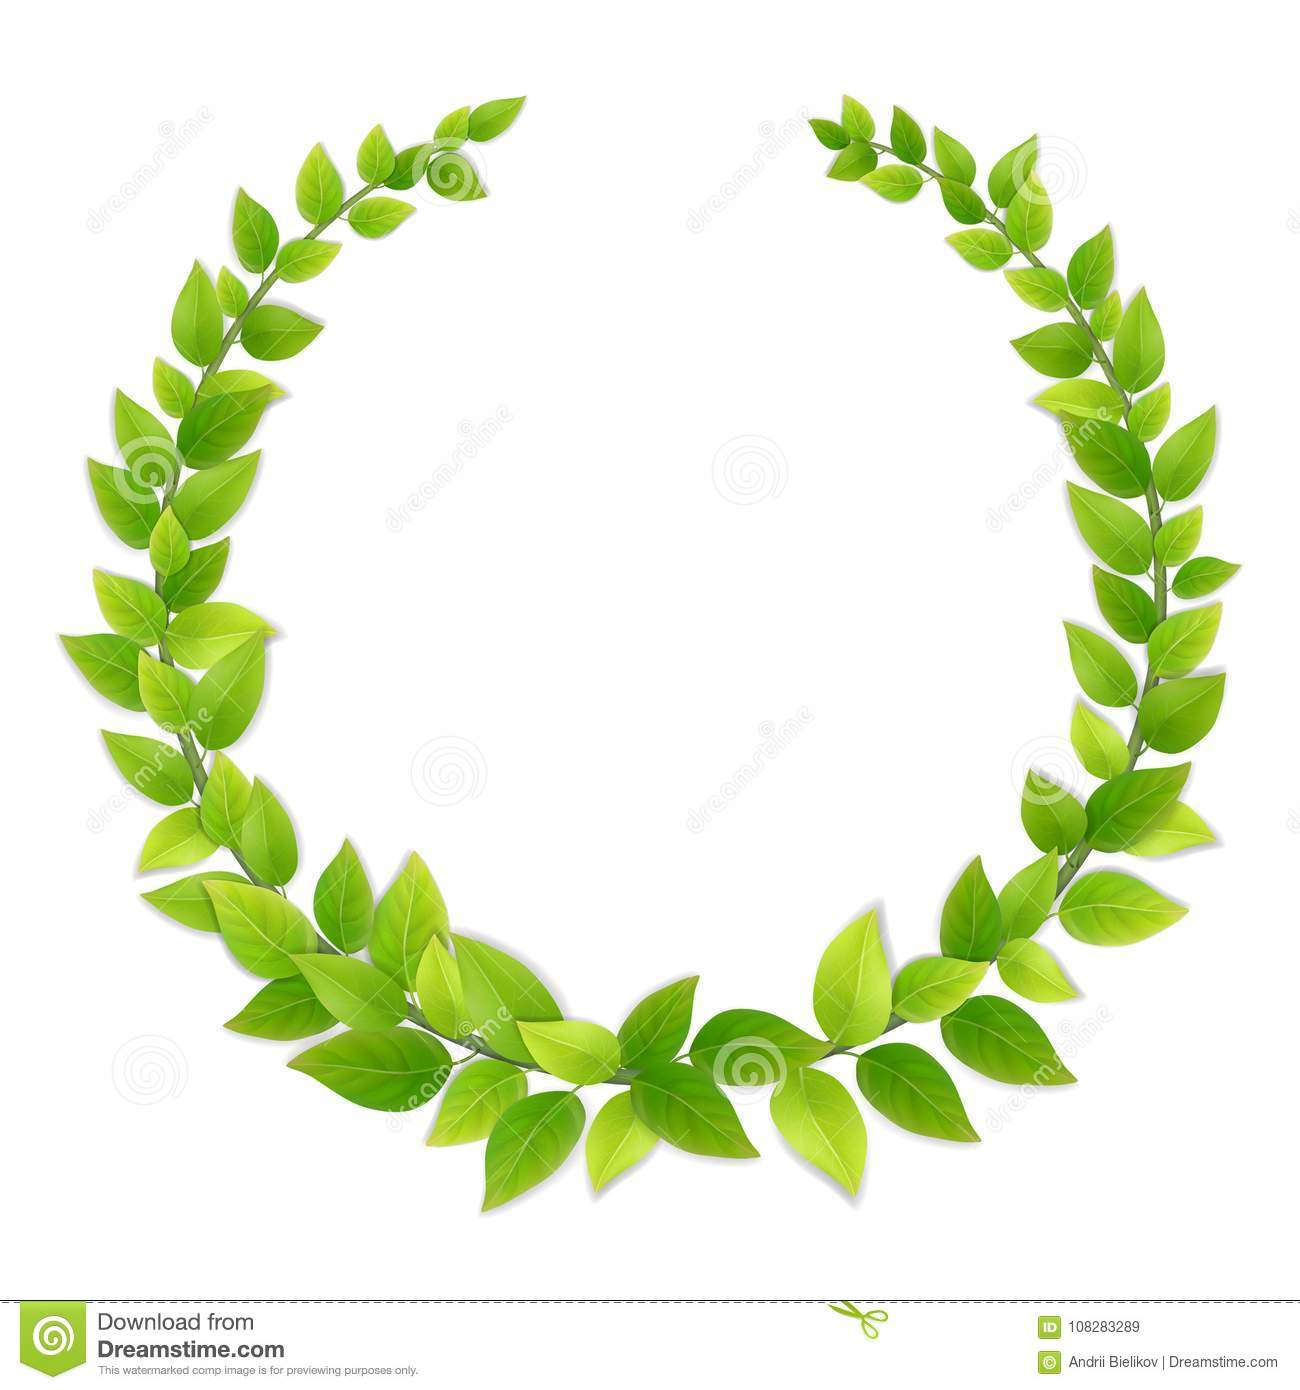 Wreath Of Fresh Green Leaves Stock Vector Illustration Of Foliage Garland 108283289